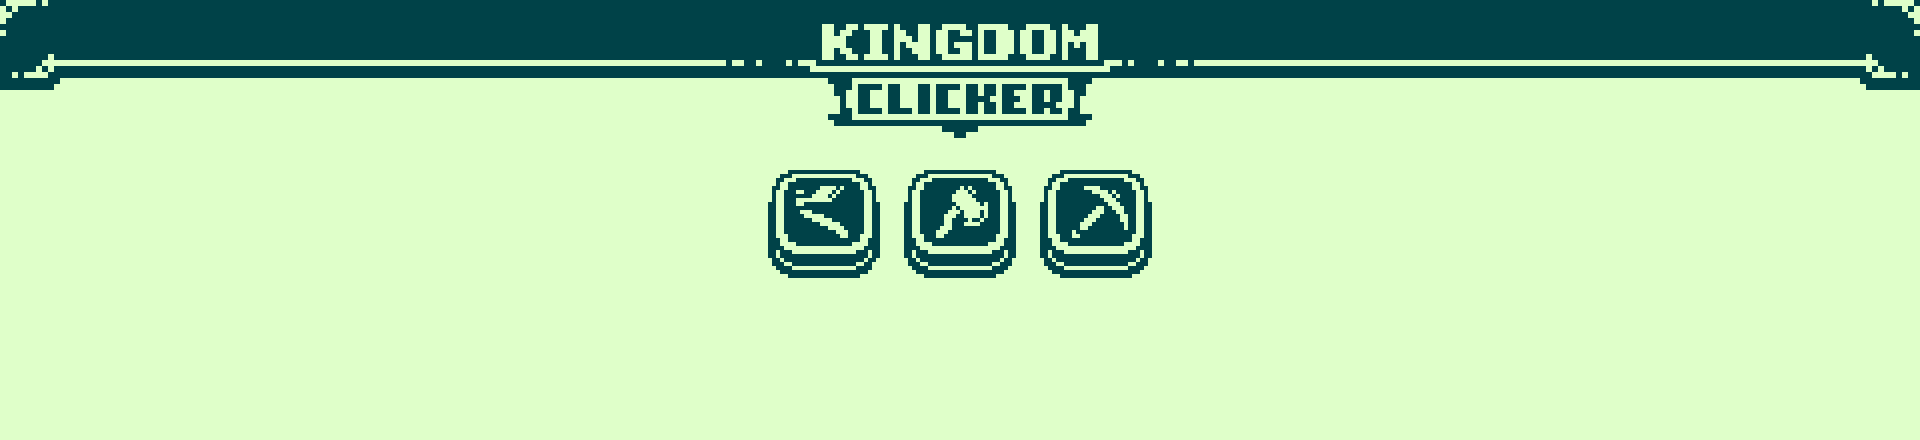 Kingdom Clicker